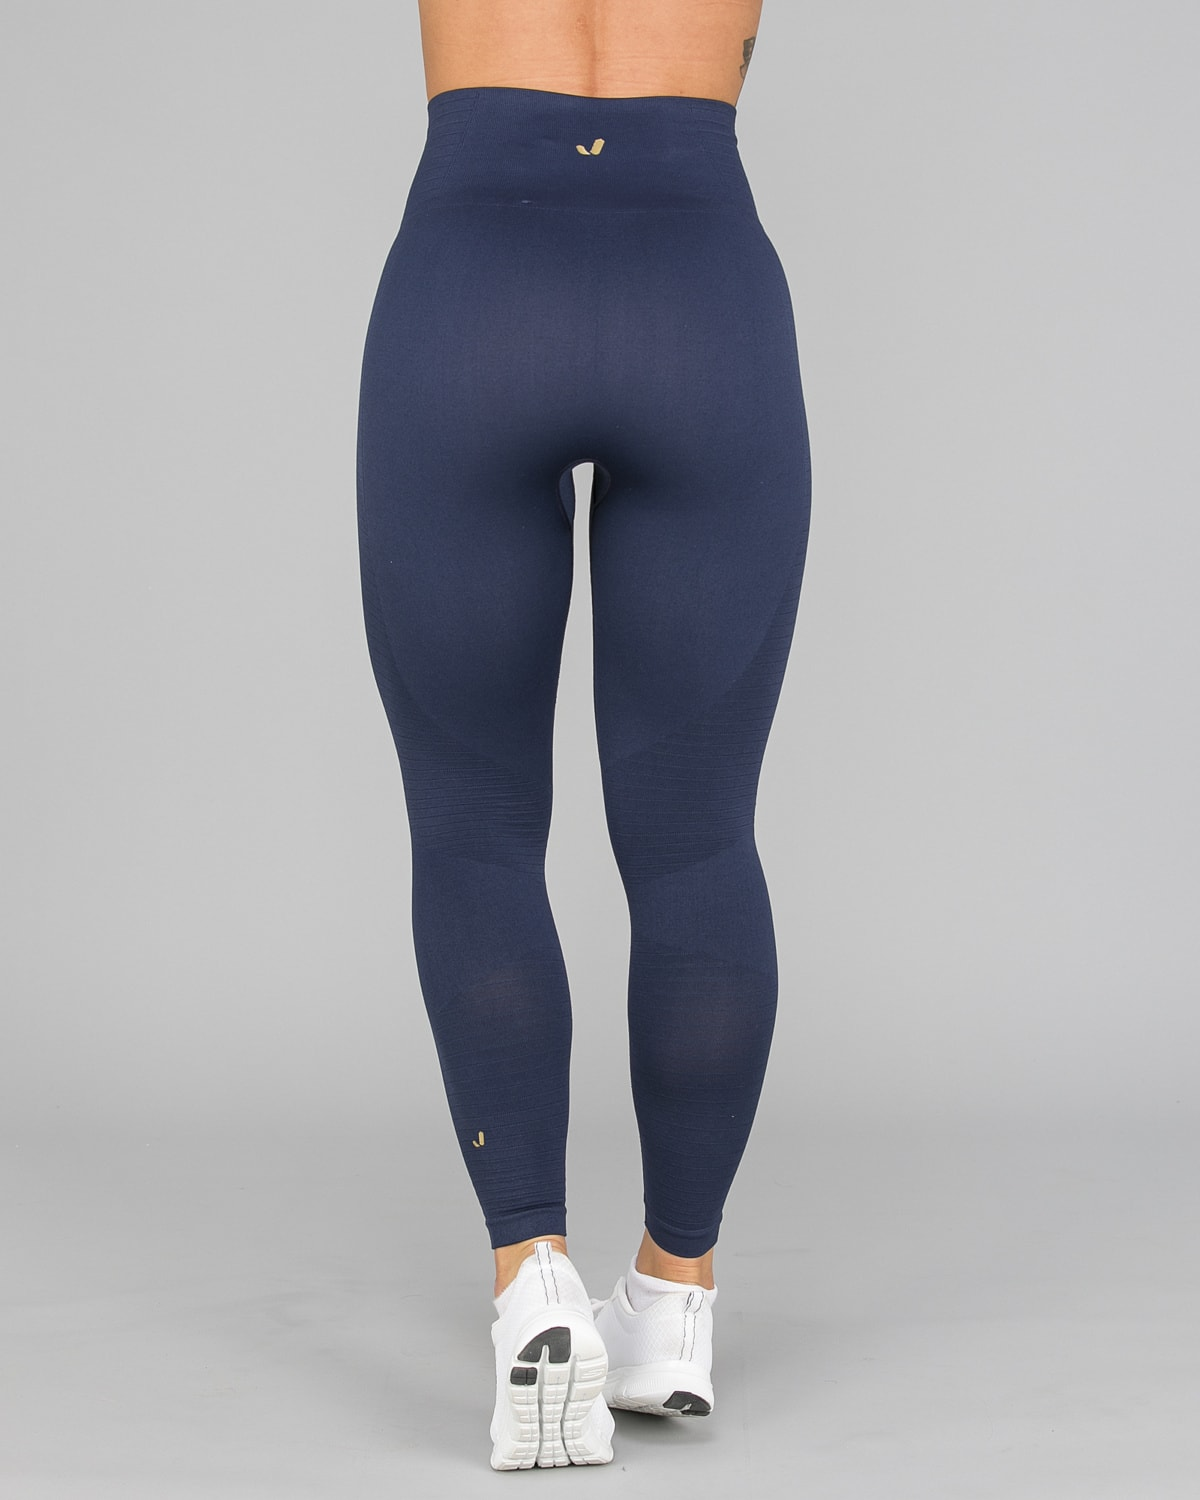 Jerf Gela 2.0 tights Navy Blue16